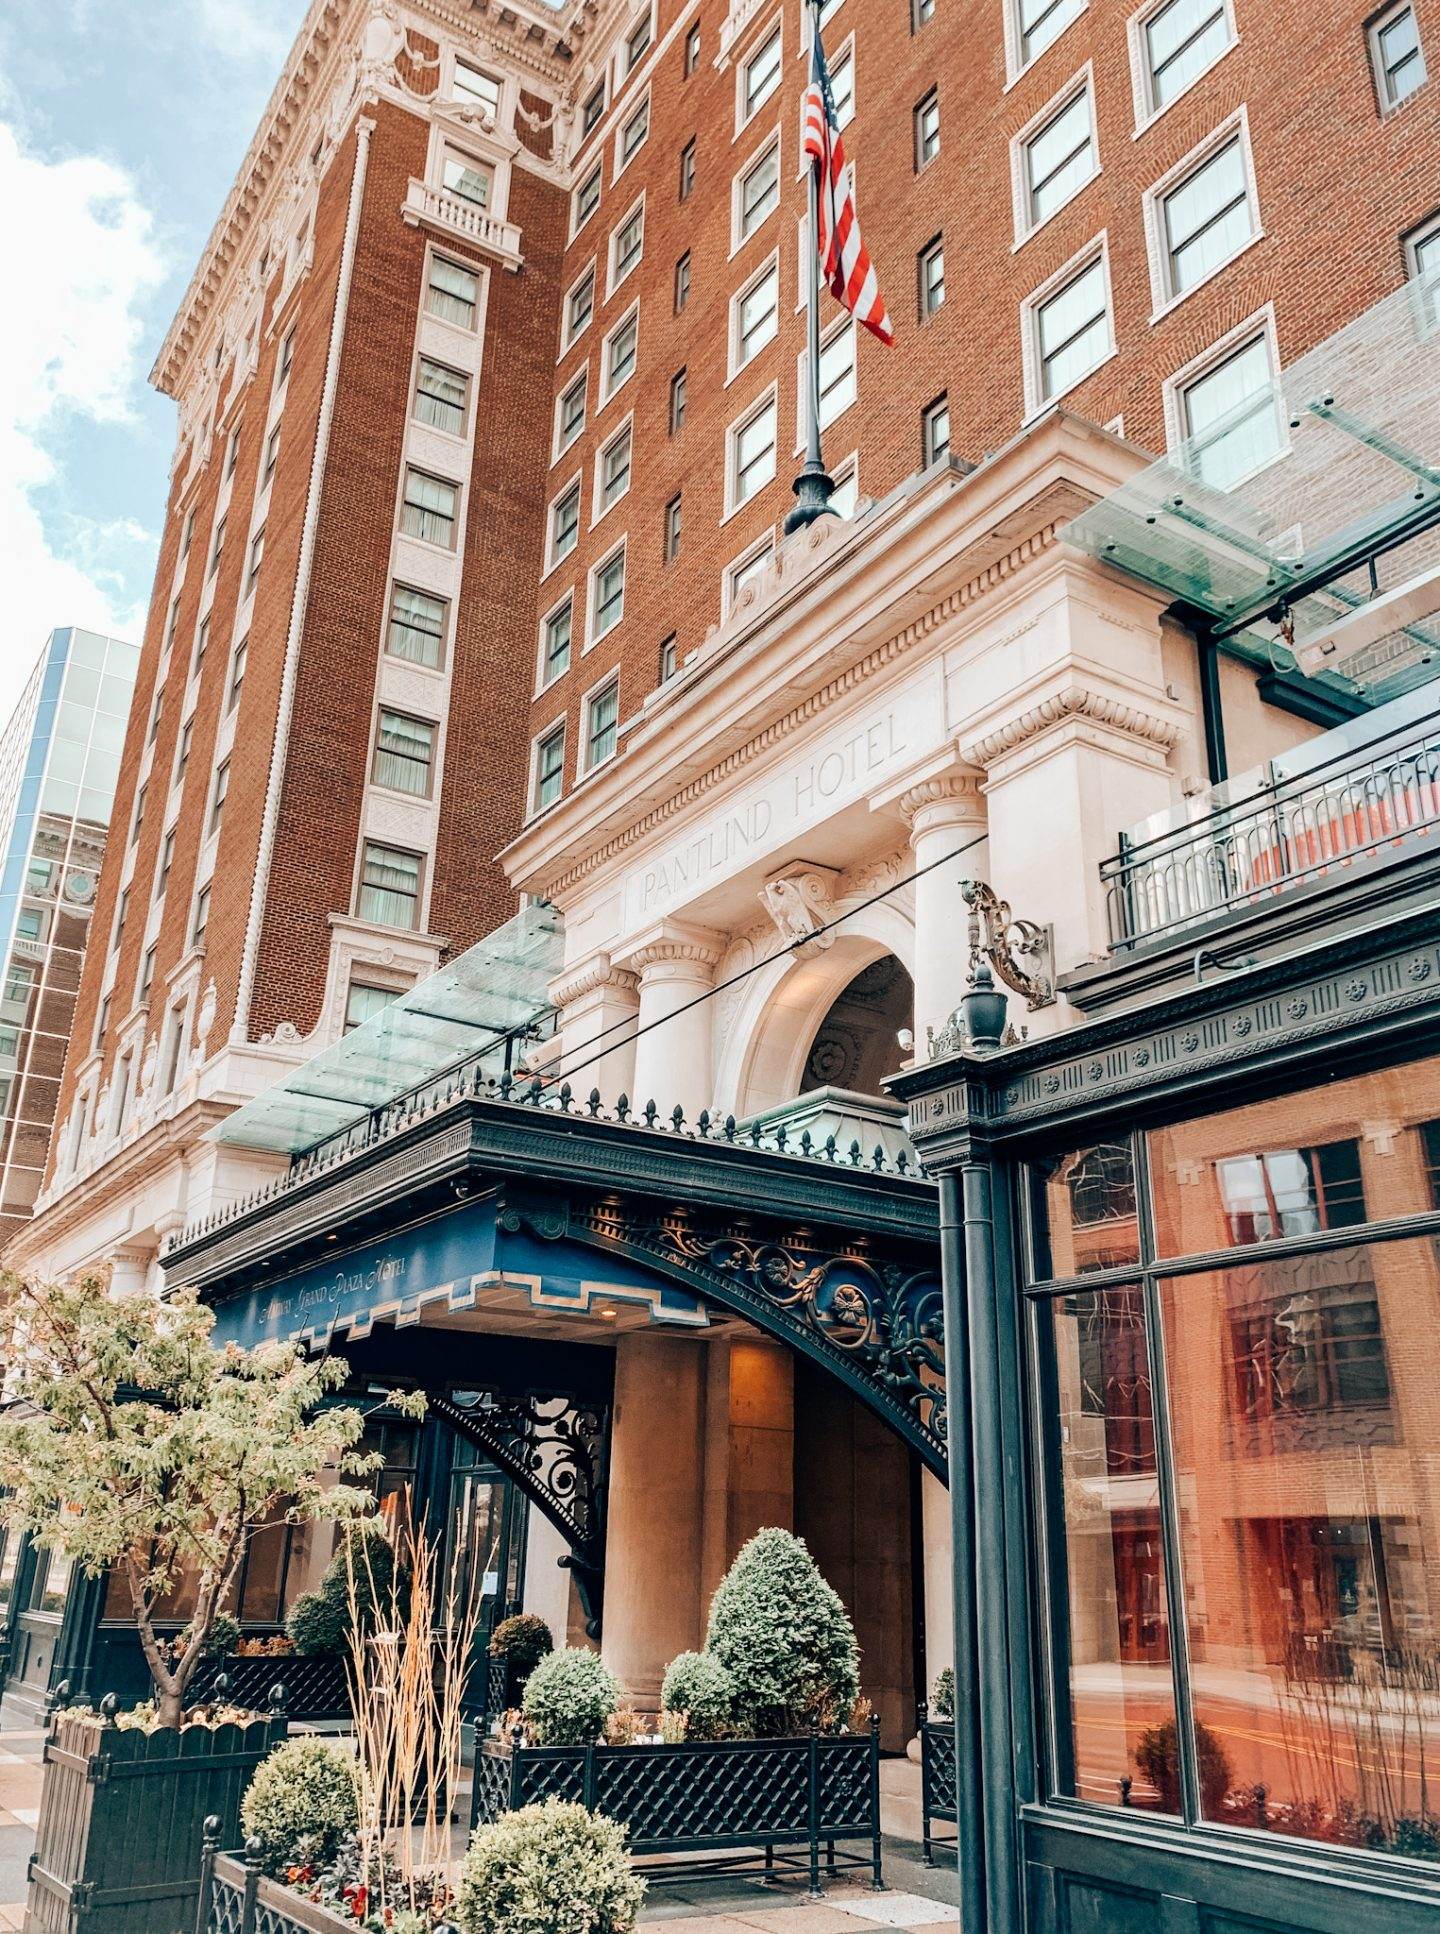 Staying at the Amway Grand in downtown Grand Rapids, Michigan